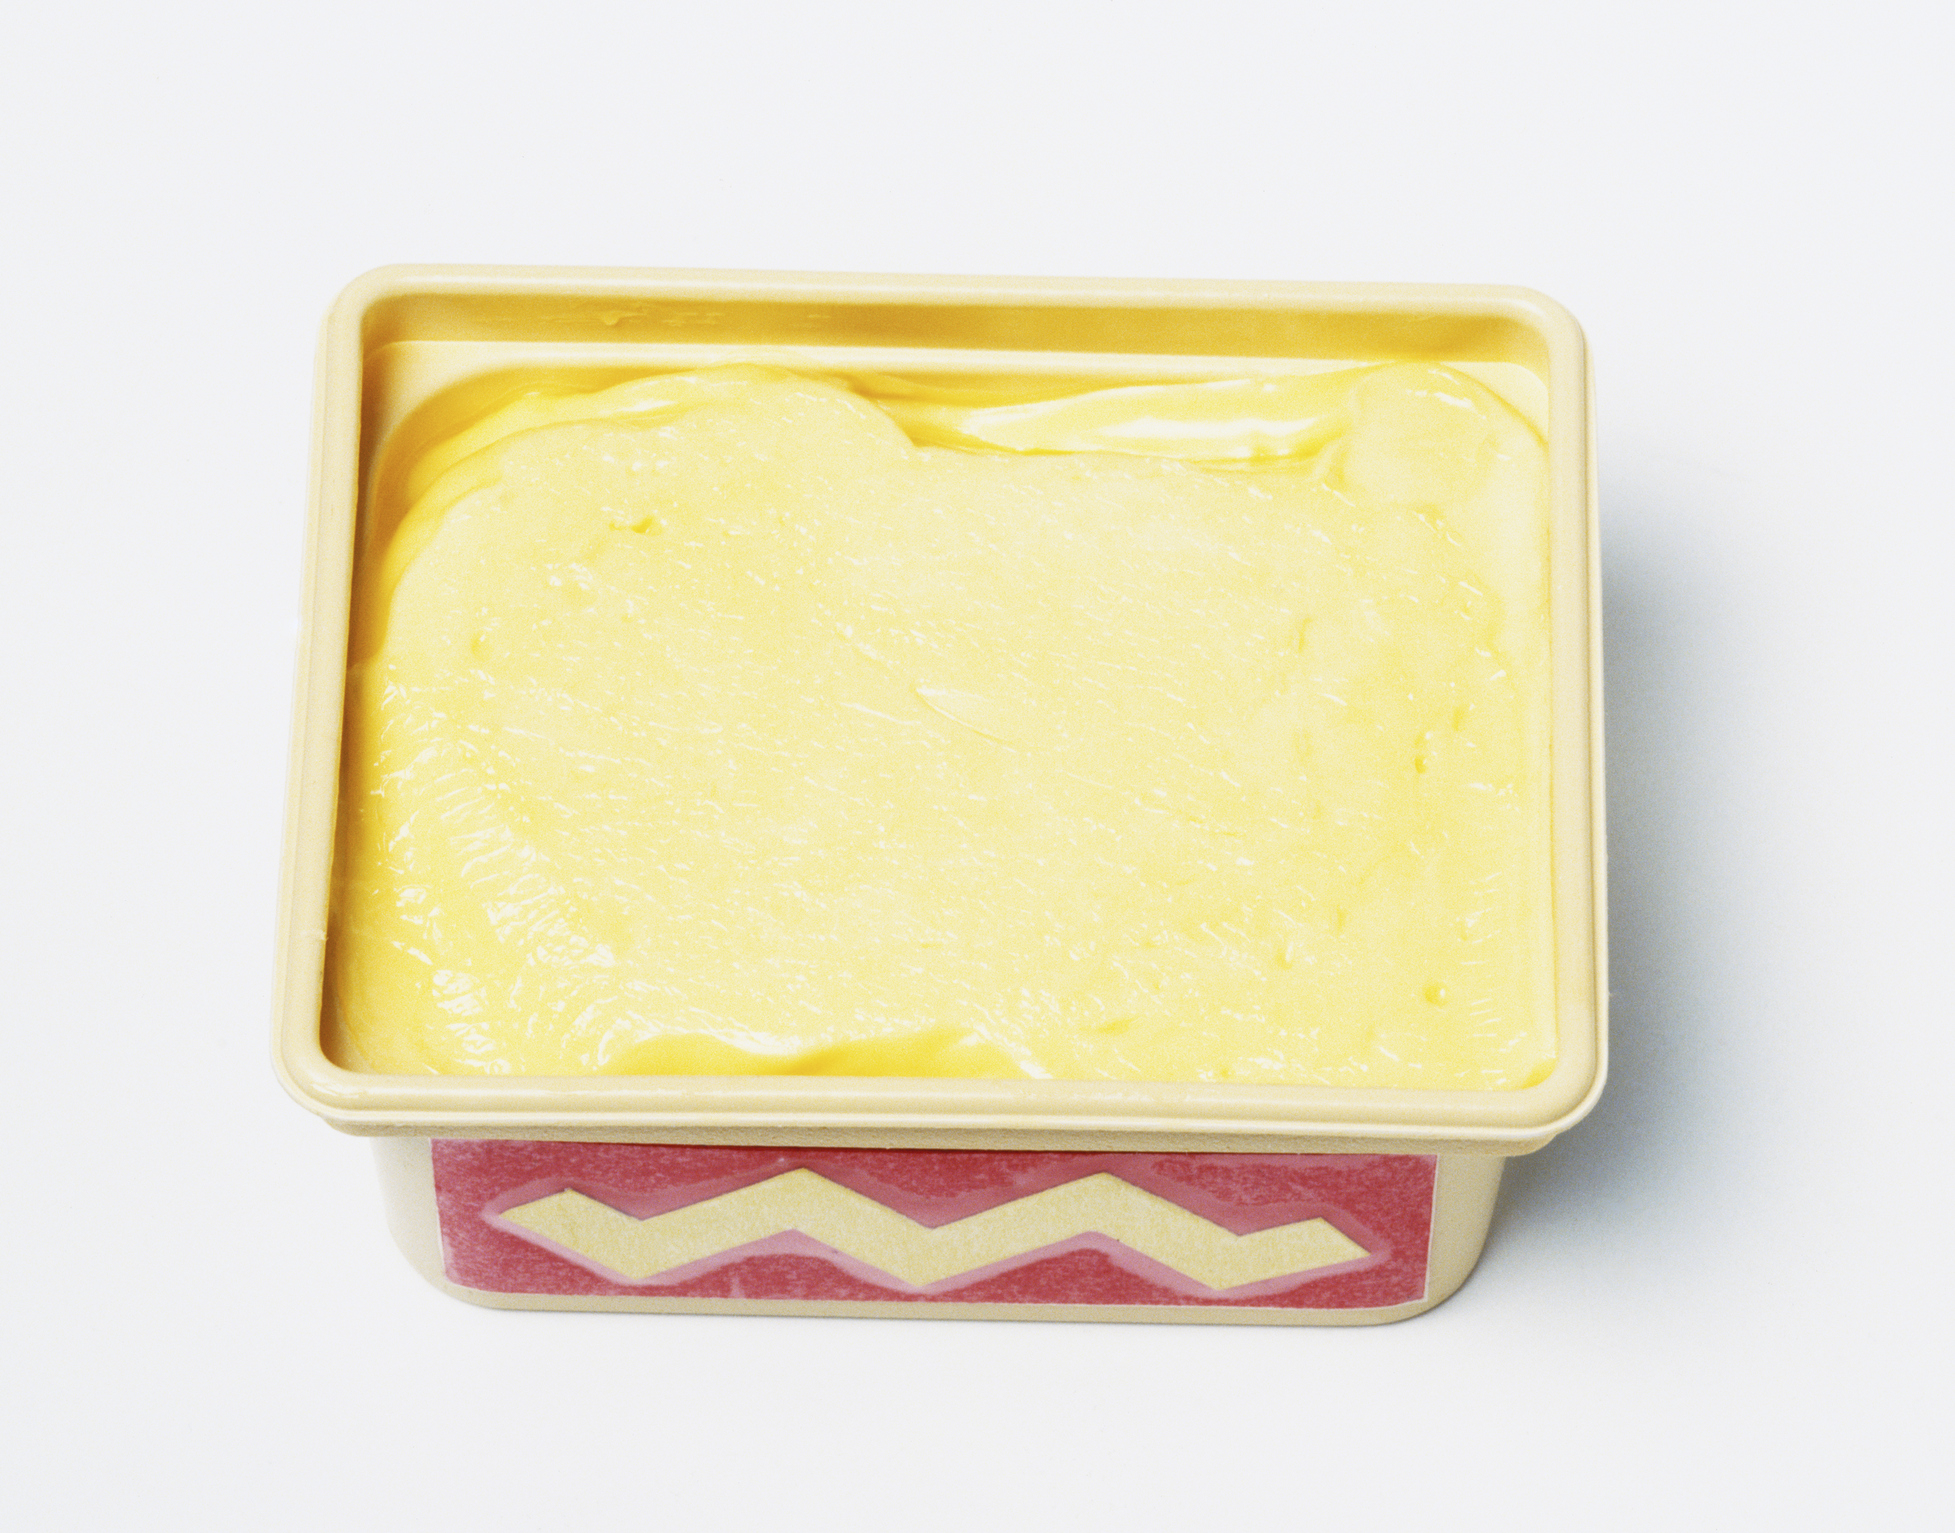 Tub of margarine with lid off, high angle view